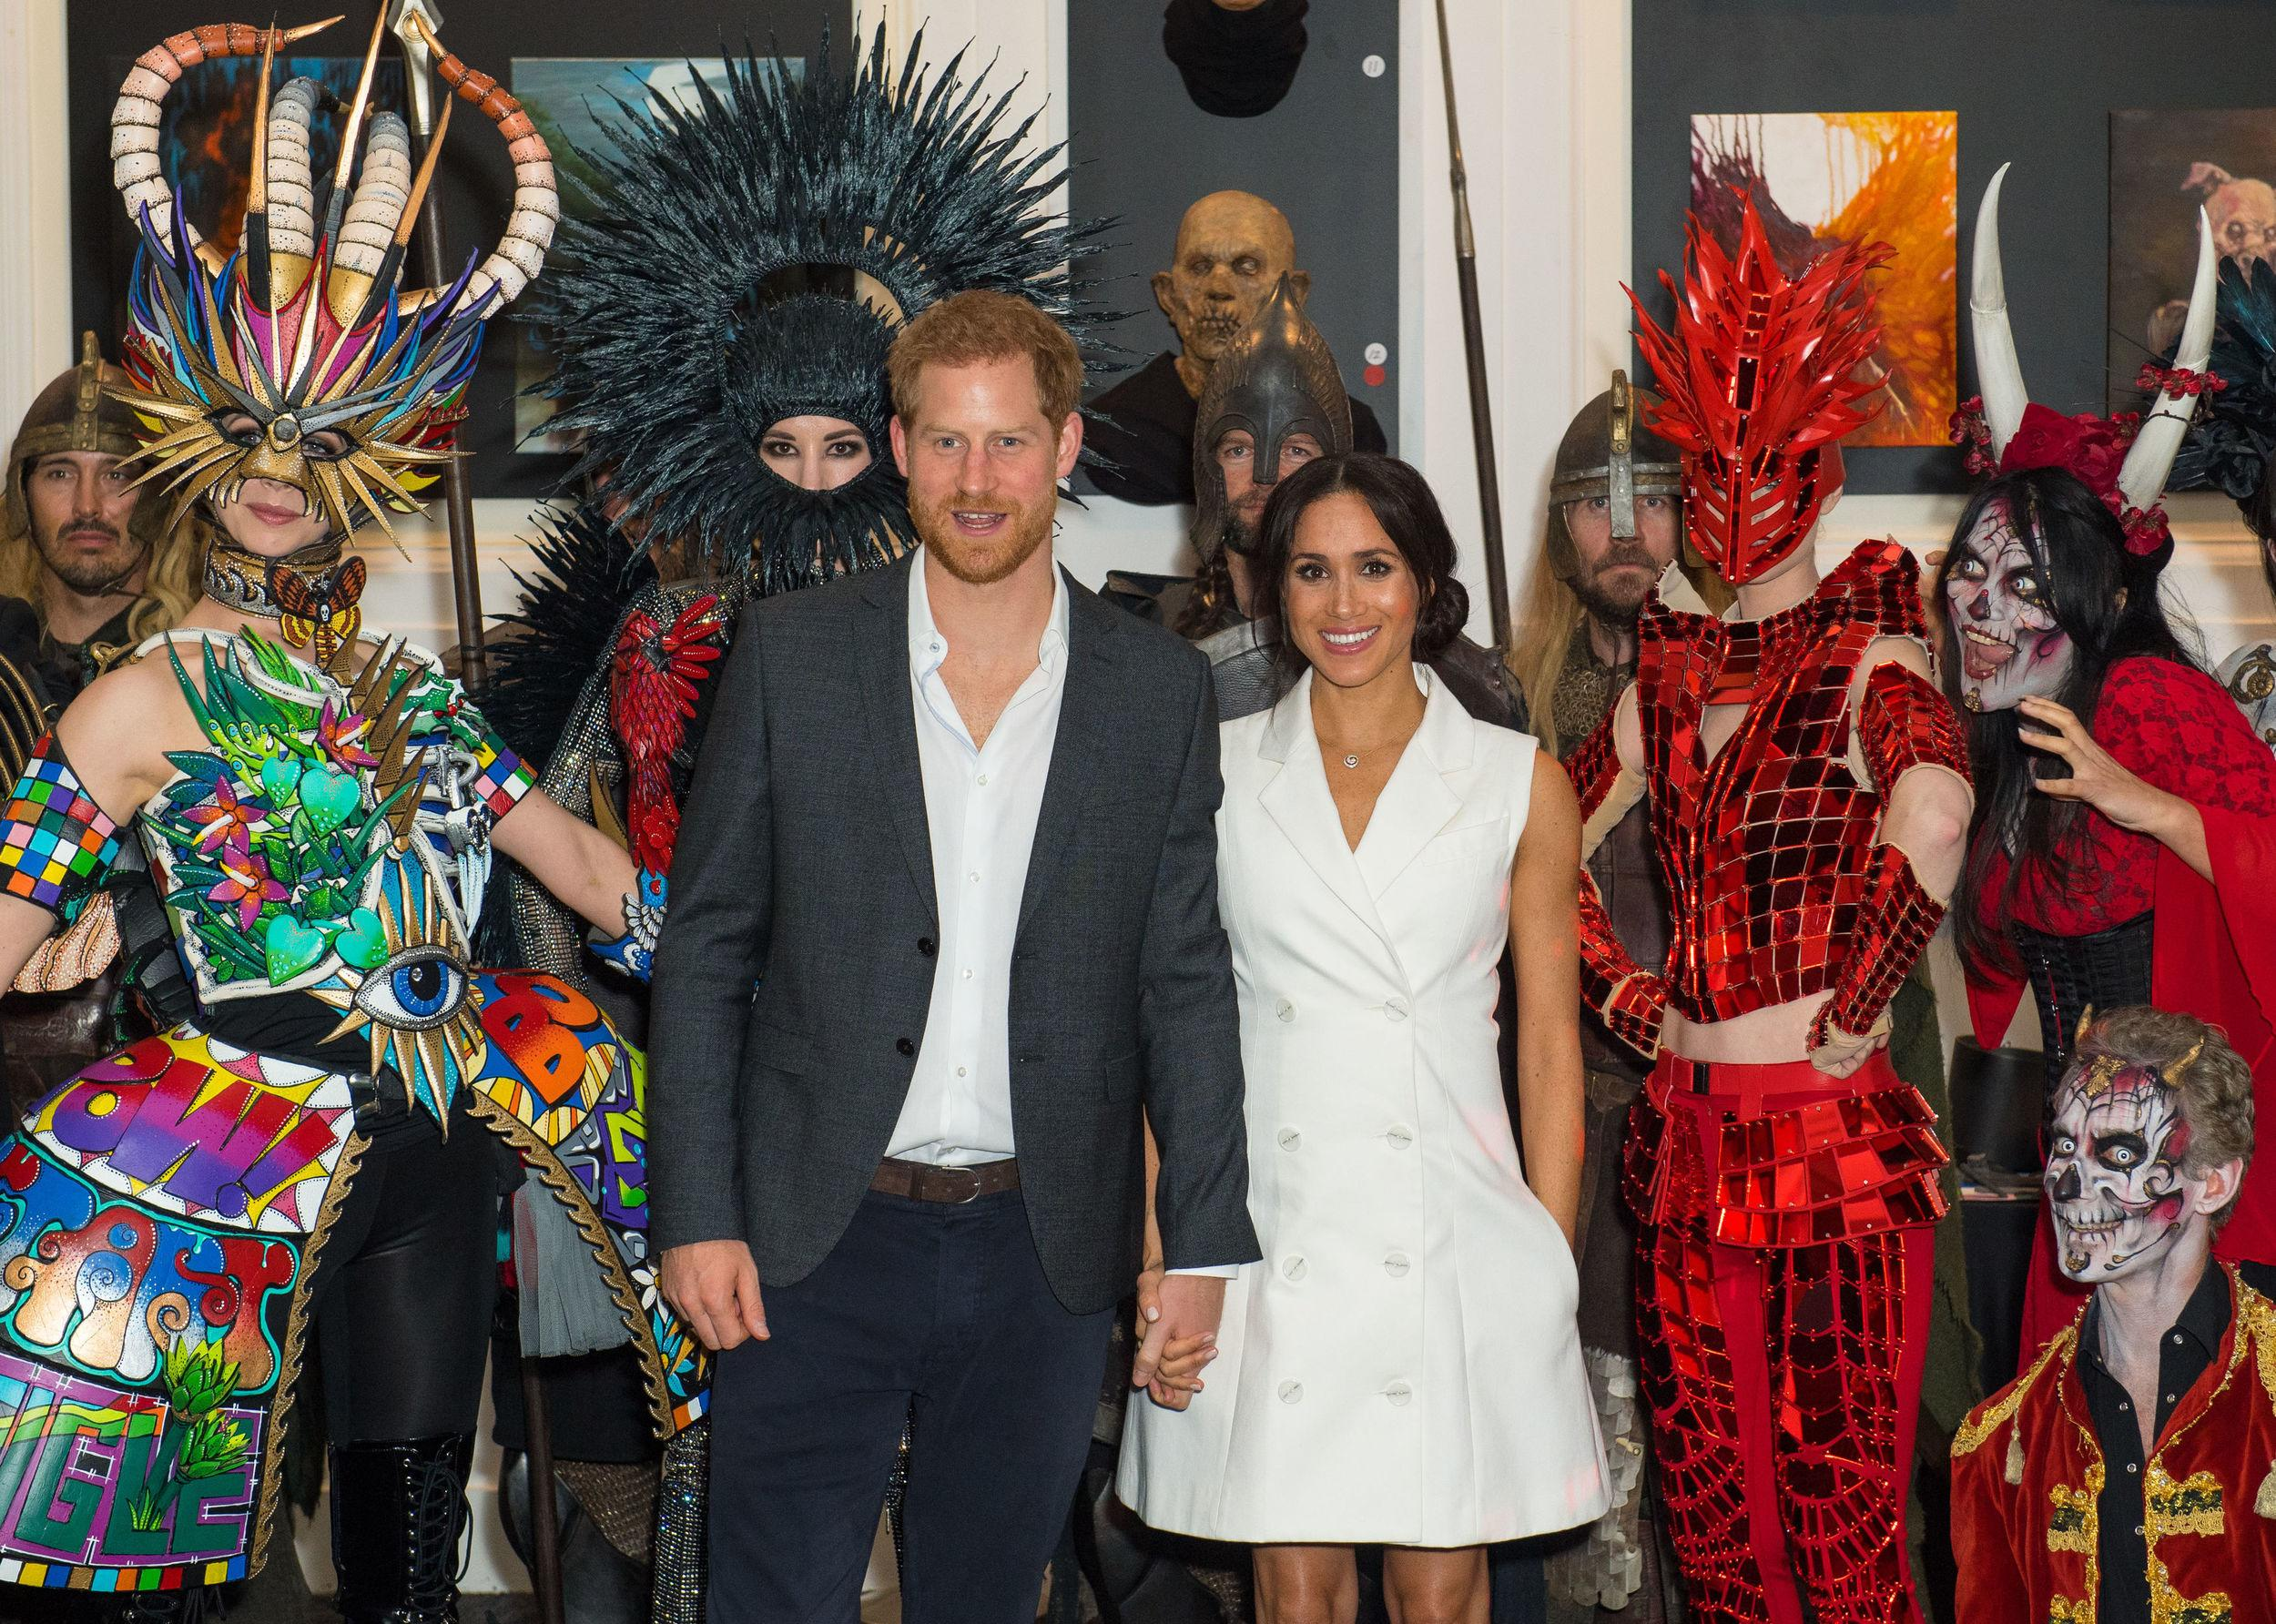 The Duke and Duchess of Sussex pose for a photo with actors in costume during a visit to Courtenay Creative, in Wellington, on day two of the royal couple's tour of New Zealand.